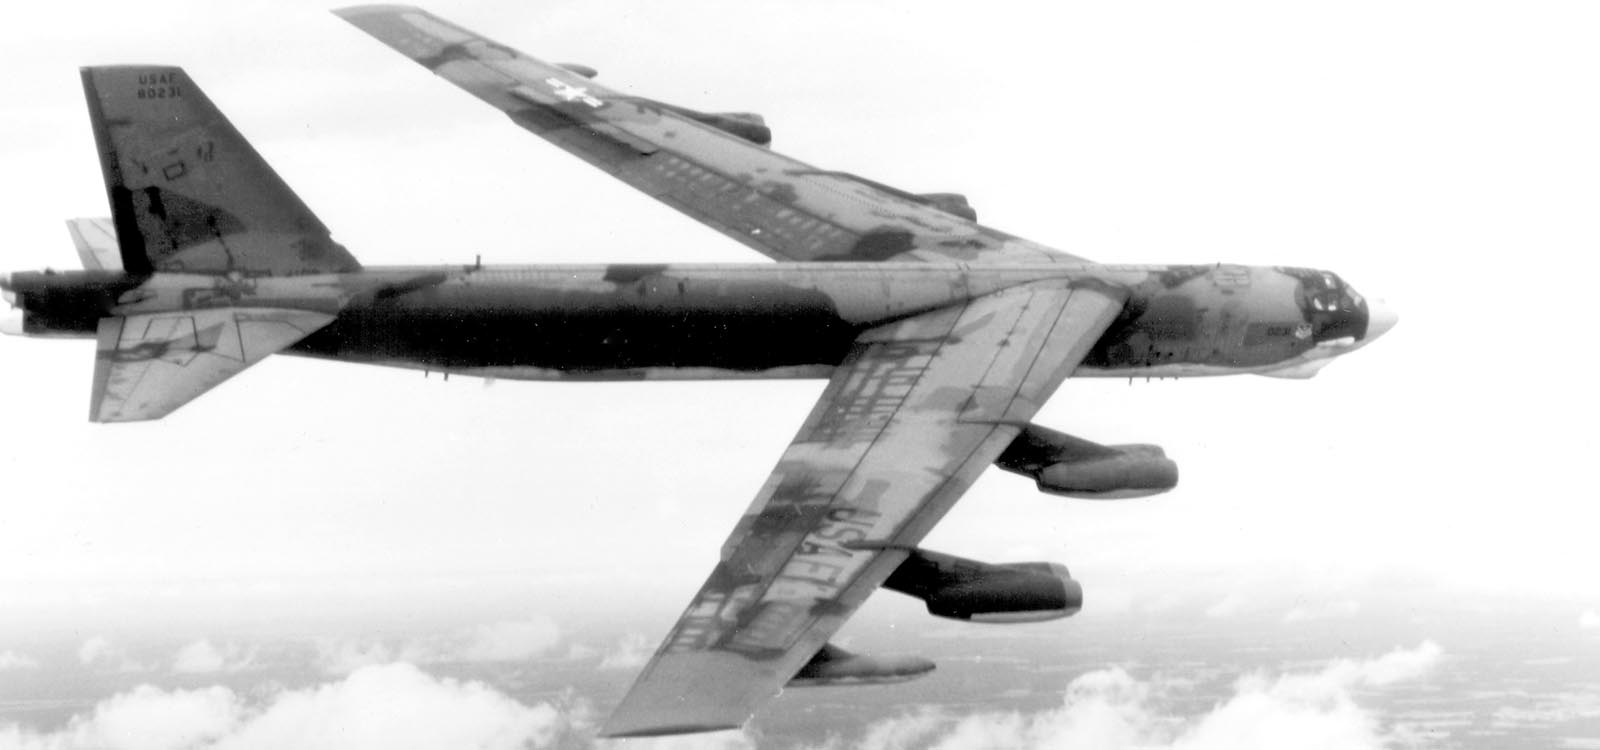 B-52 Stratofortress, 1955